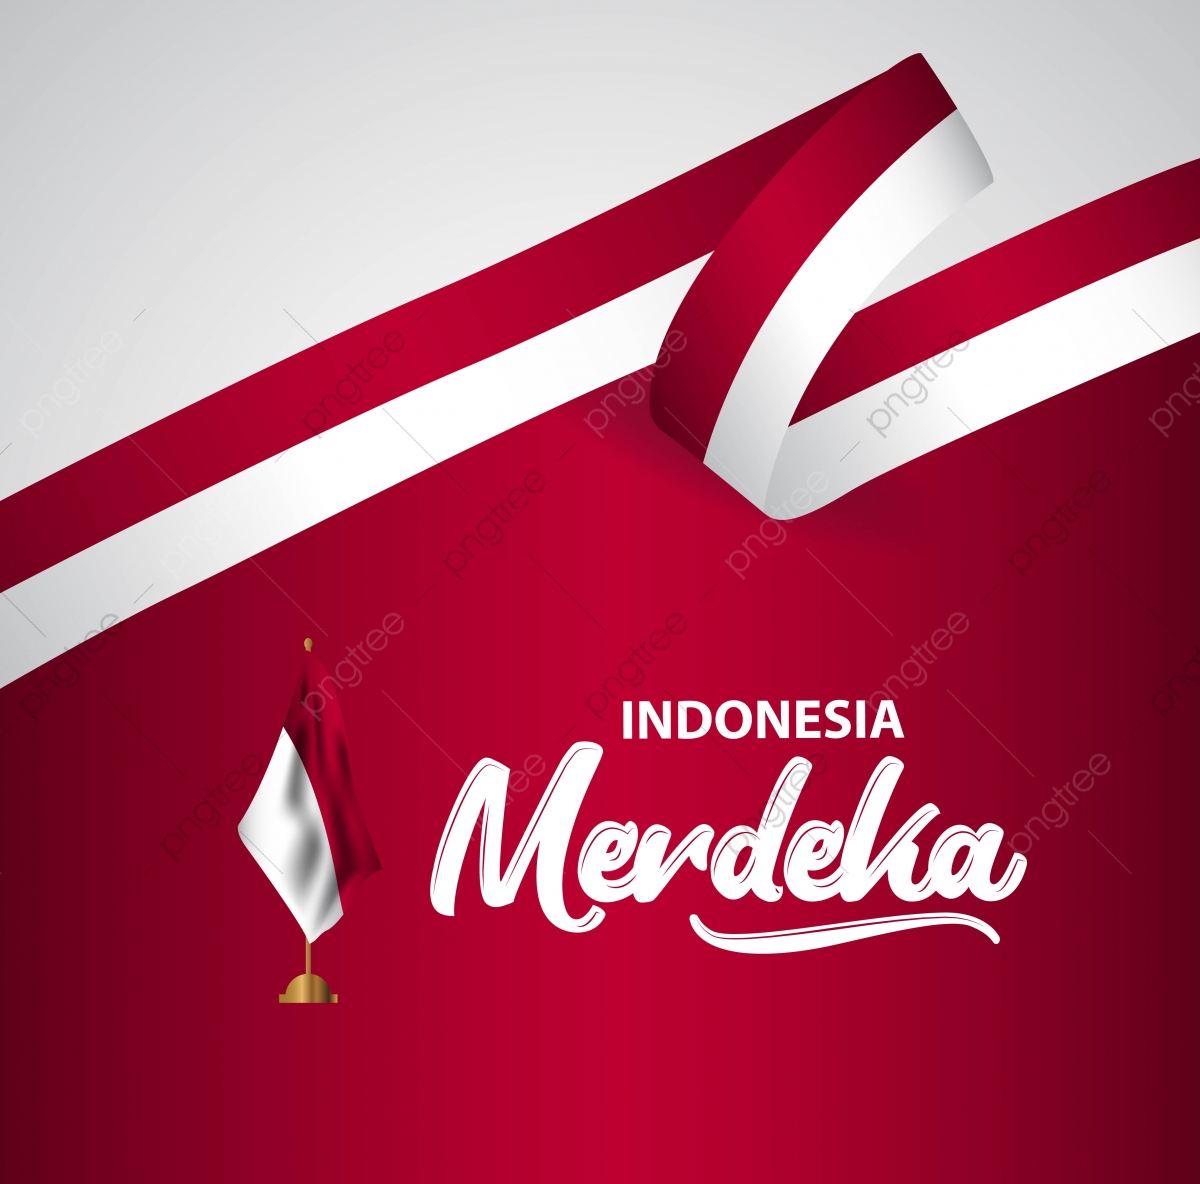 indonesia merdeka flag vector template design illustration flag icons template icons independence png and vector with transparent background for free download https pngtree com freepng indonesia merdeka flag vector template design illustration 4137767 html